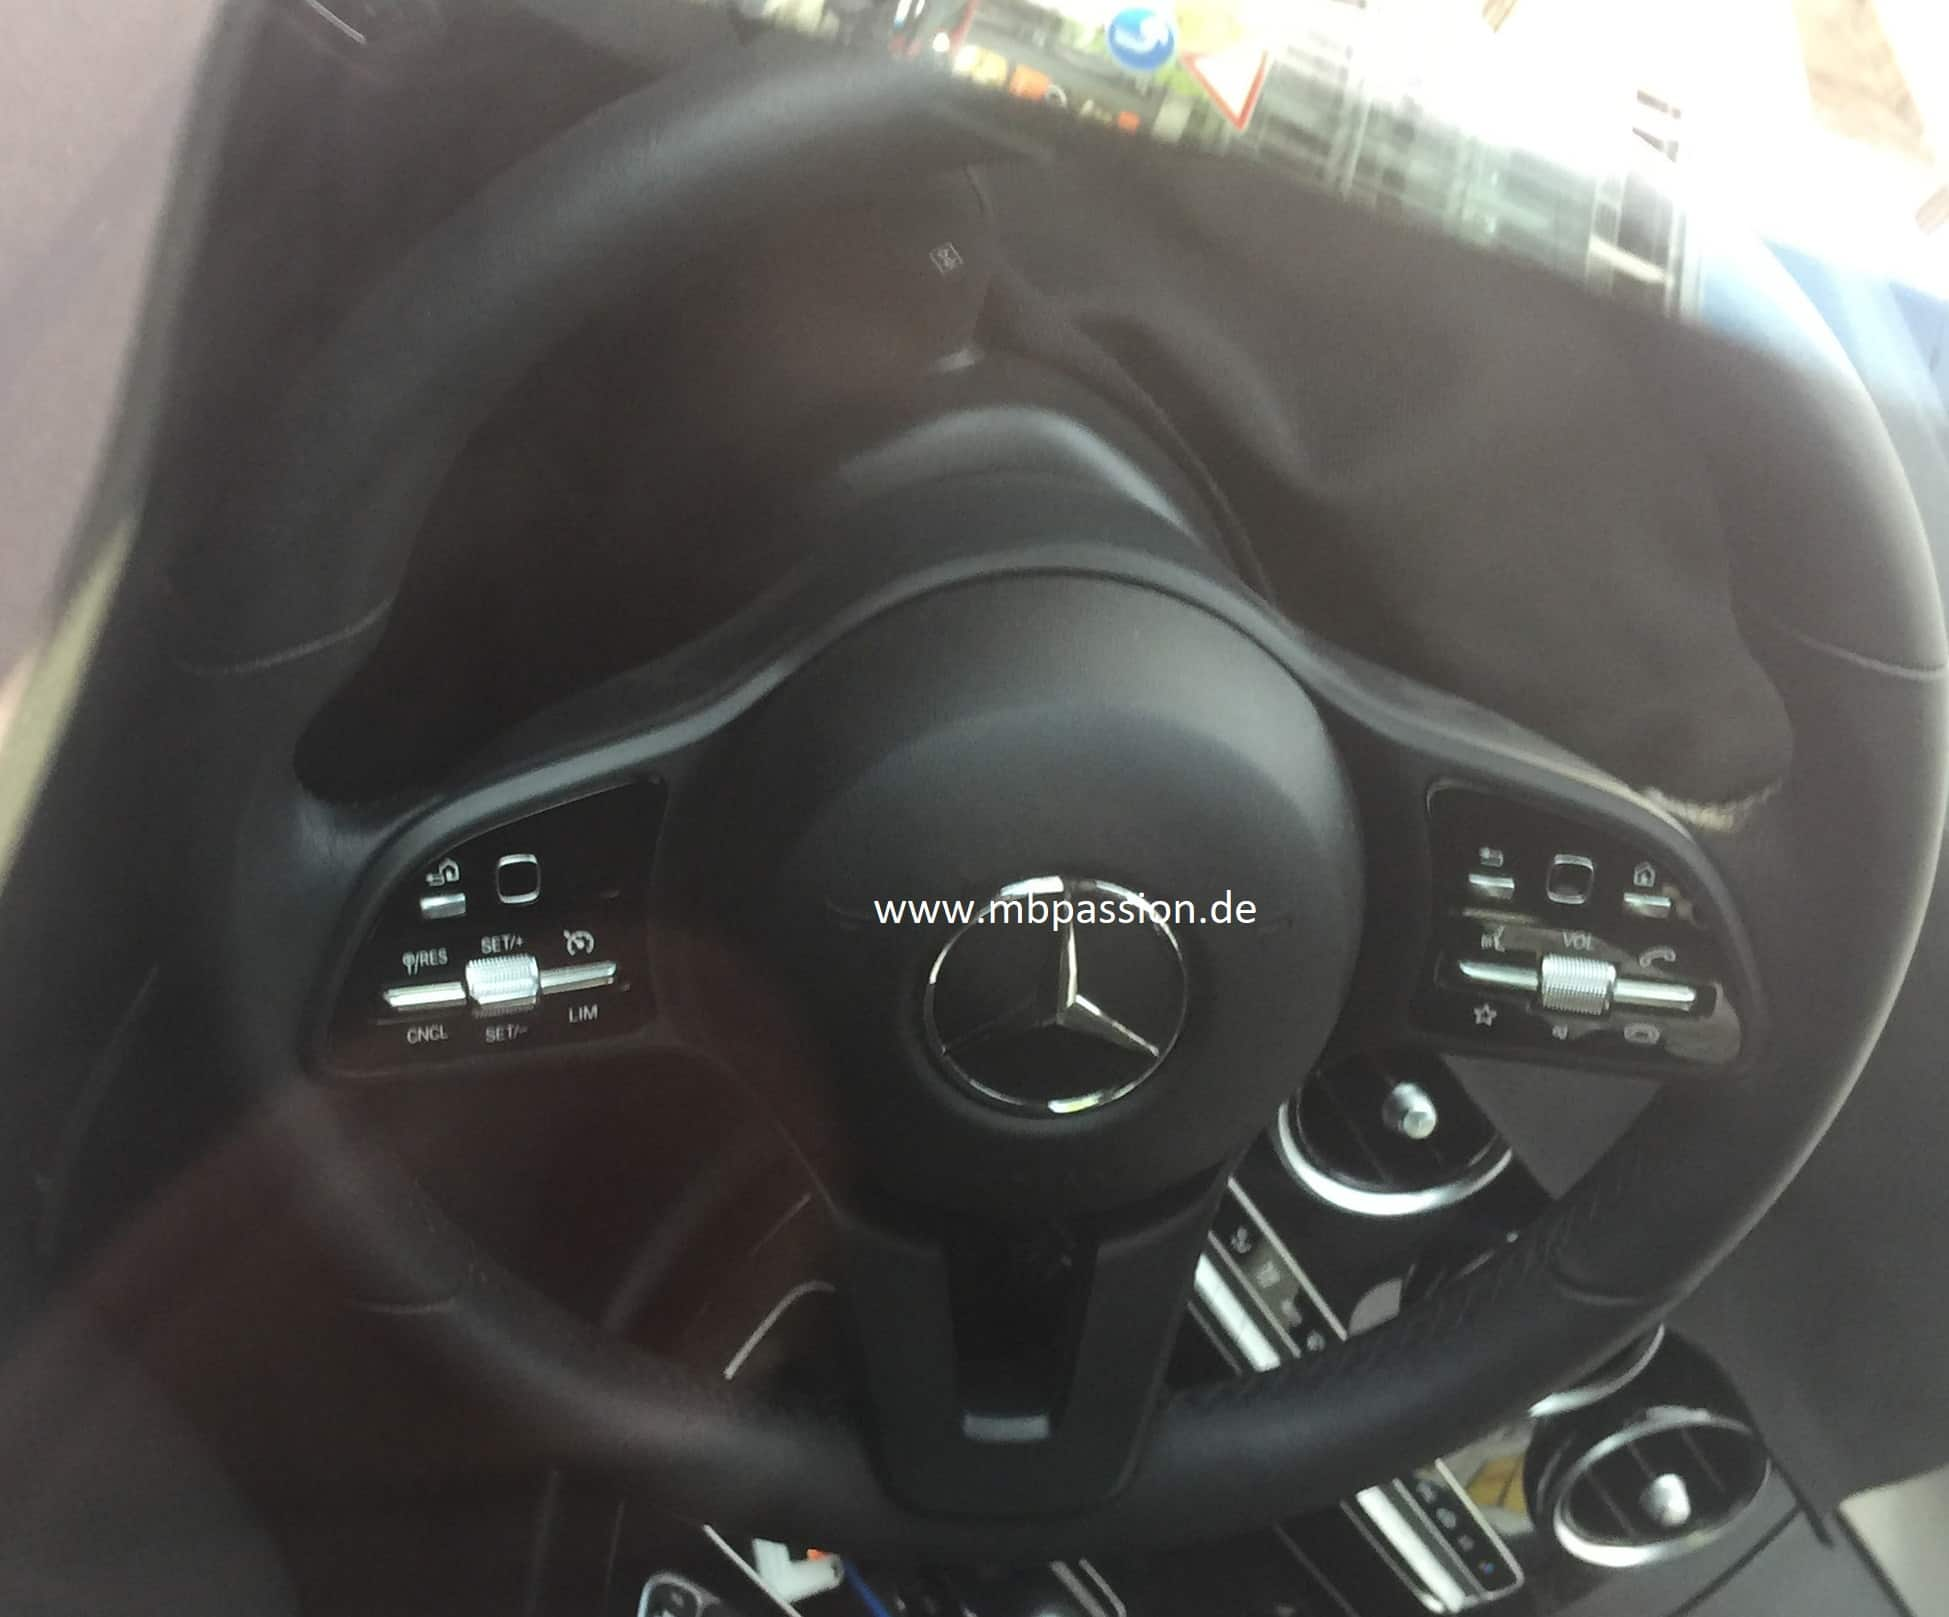 2018 mercedes benz c class interiors spied find new upcoming cars latest car bikes news. Black Bedroom Furniture Sets. Home Design Ideas